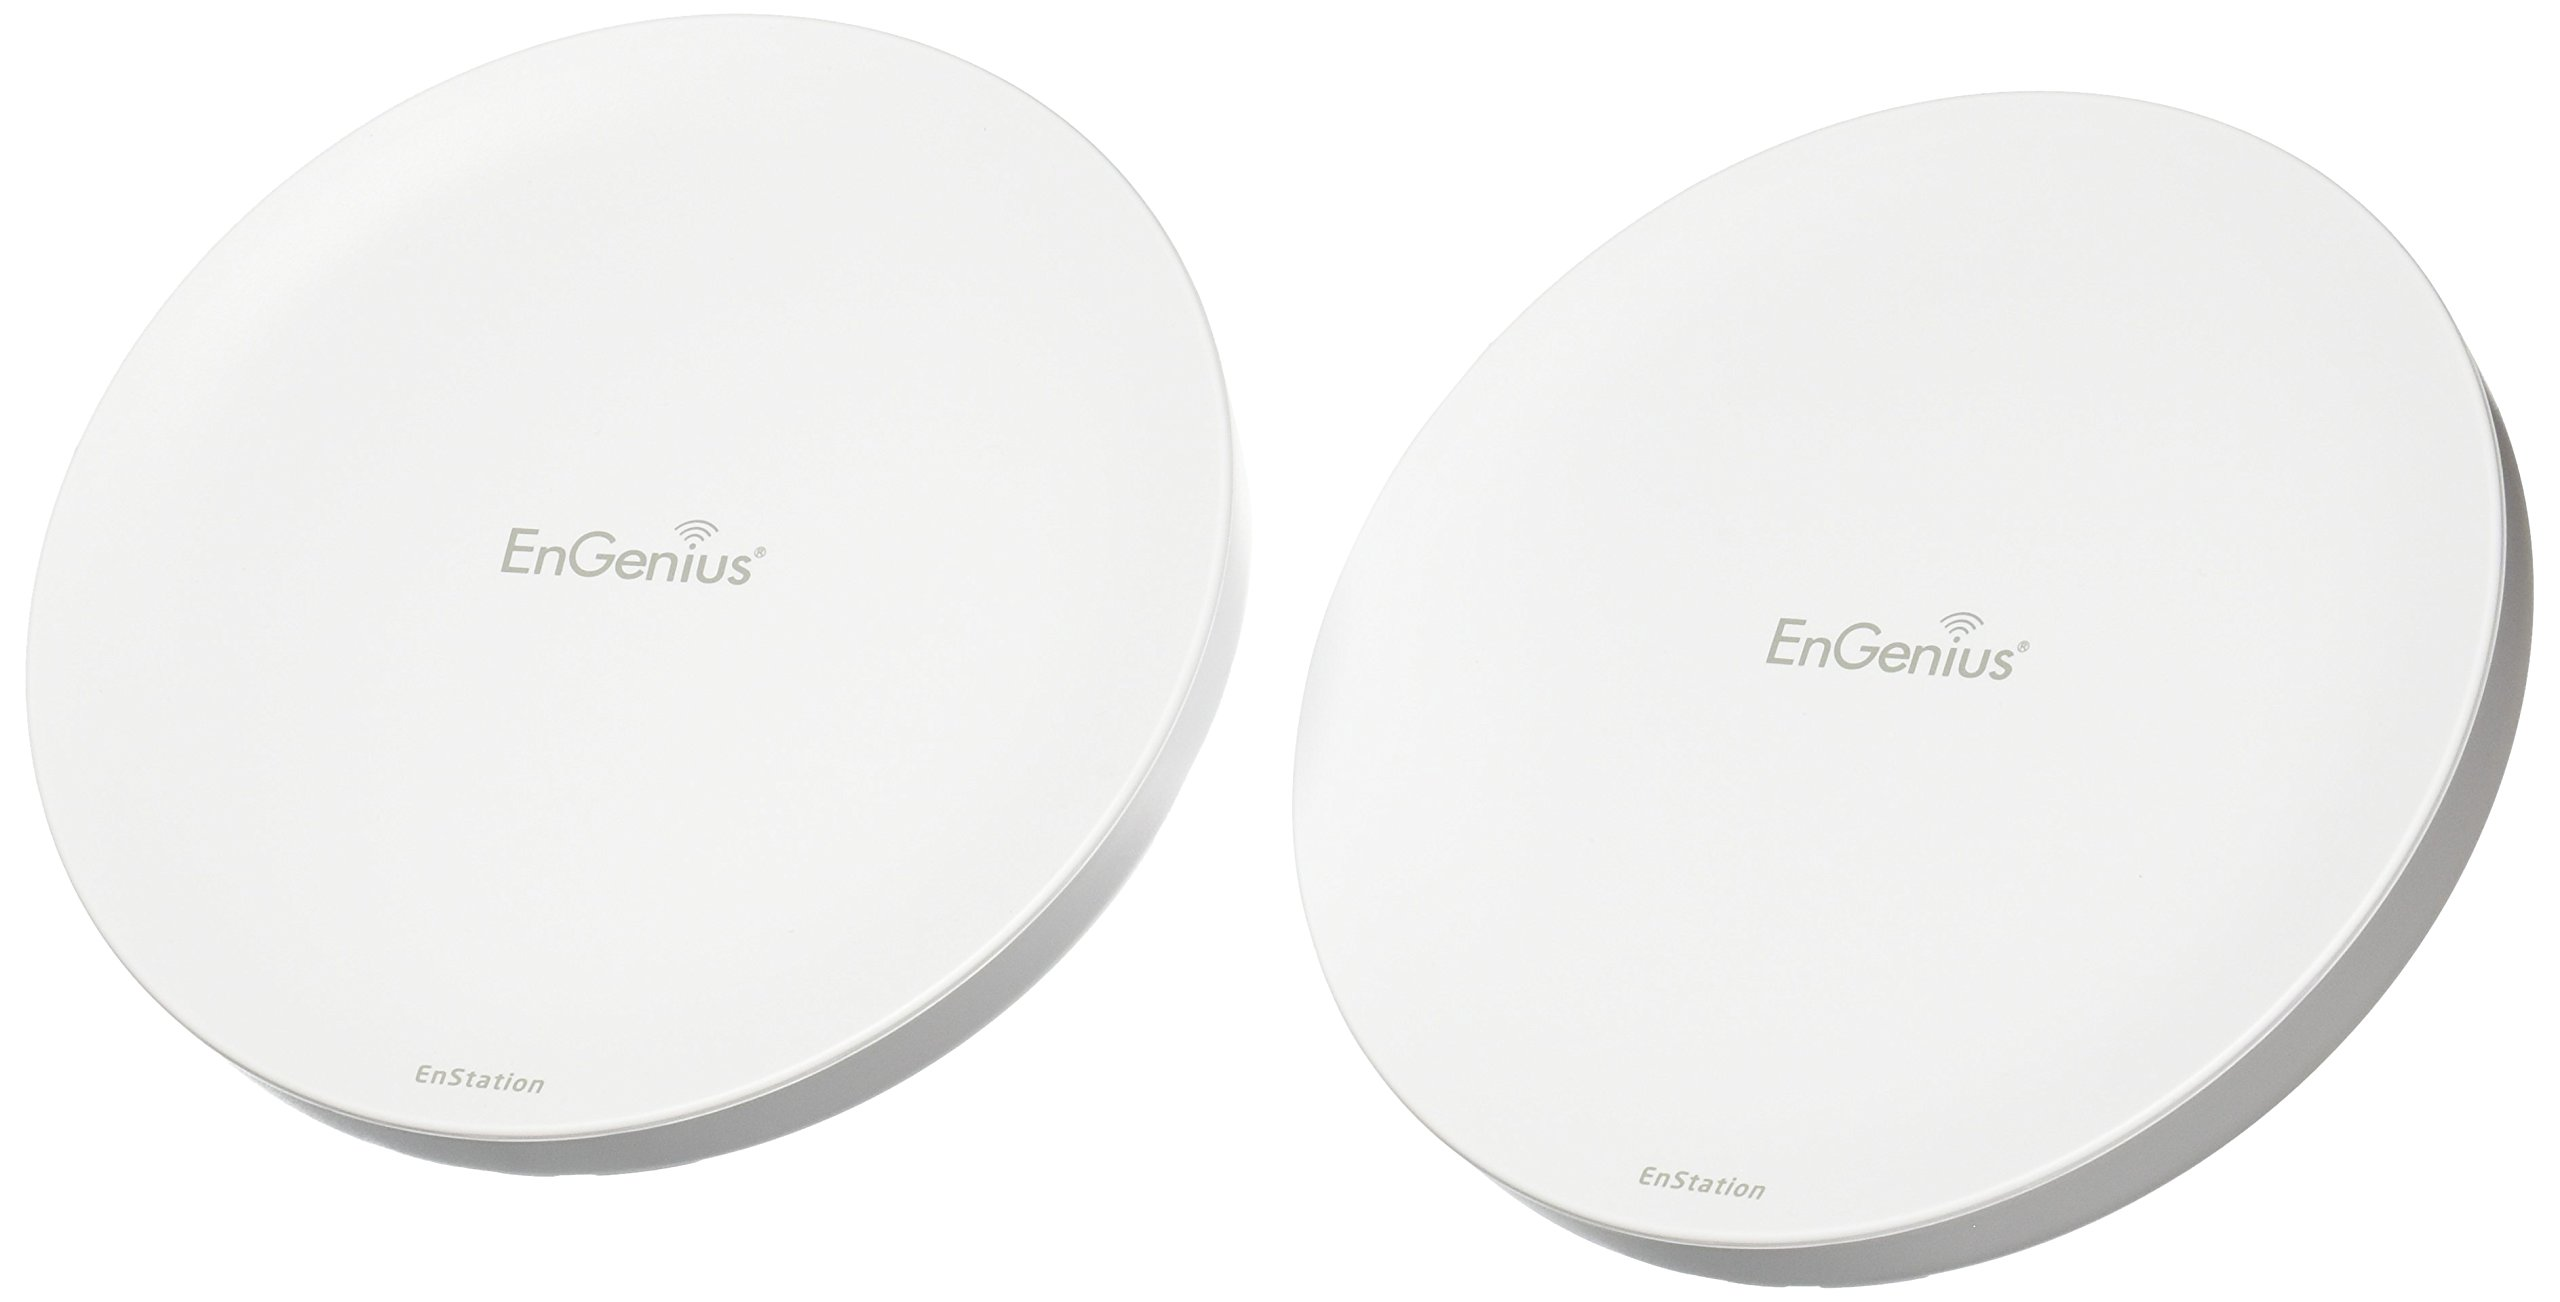 EnGenius 80211n 2x2, 5GHz, high-powered, long range, Wireless Outdoor Client Bridge/CPE/AP, directional antenna, long-range, point-to-point, IP55, 26 dBm,19 dBi, two Ethernet Port, PoE Injector included [2-Pack] (N-EnStation5 Kit) by EnGenius